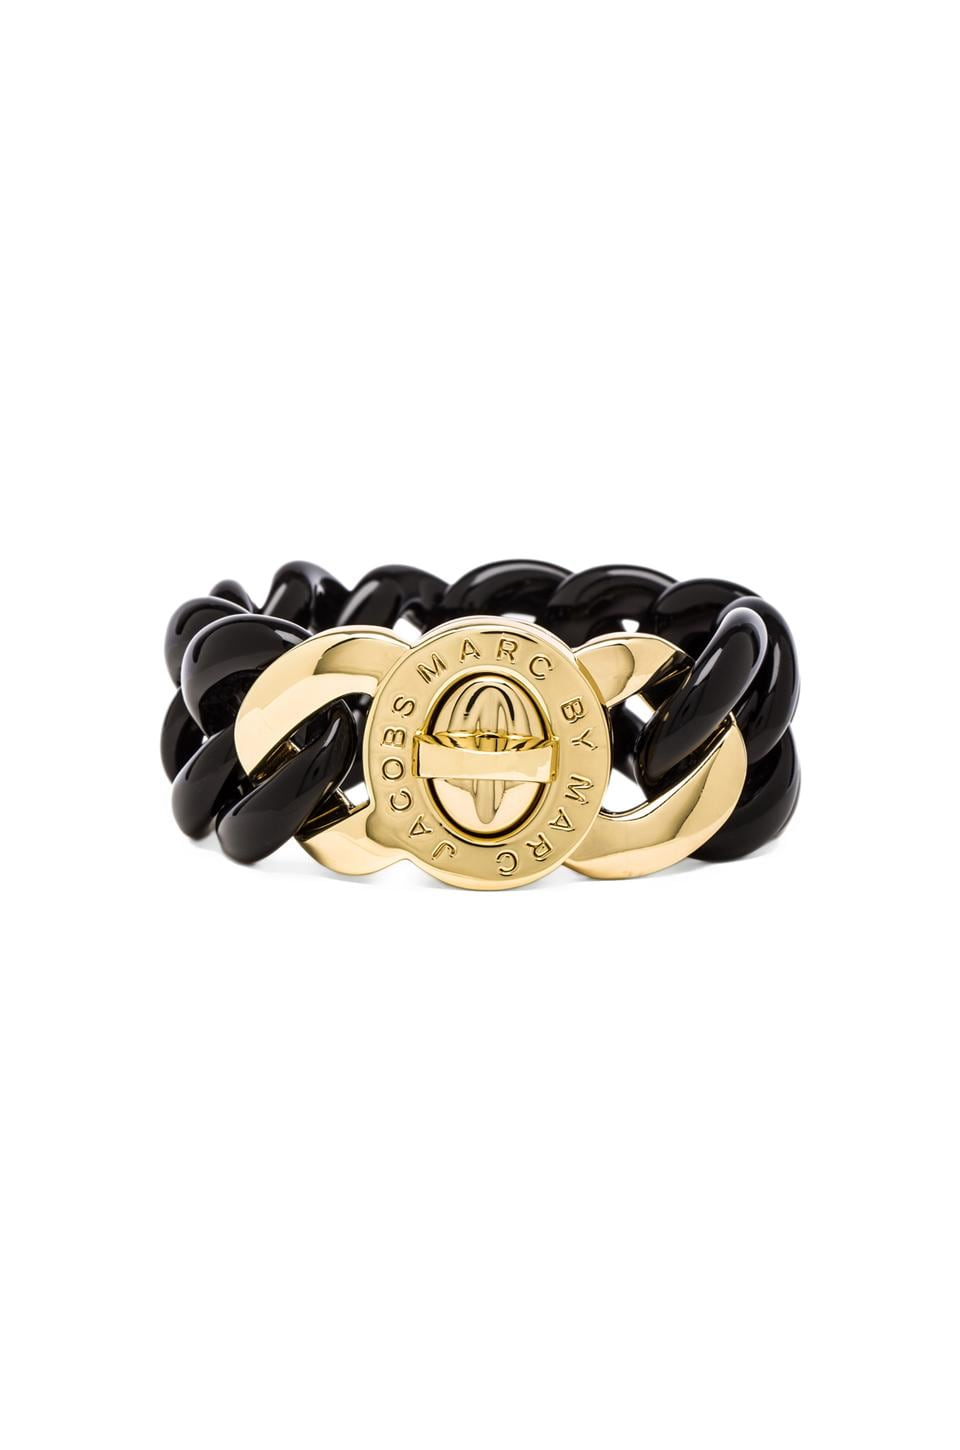 Marc by Marc Jacobs Small Candy Turnlock Bracelet in Black (Oro)